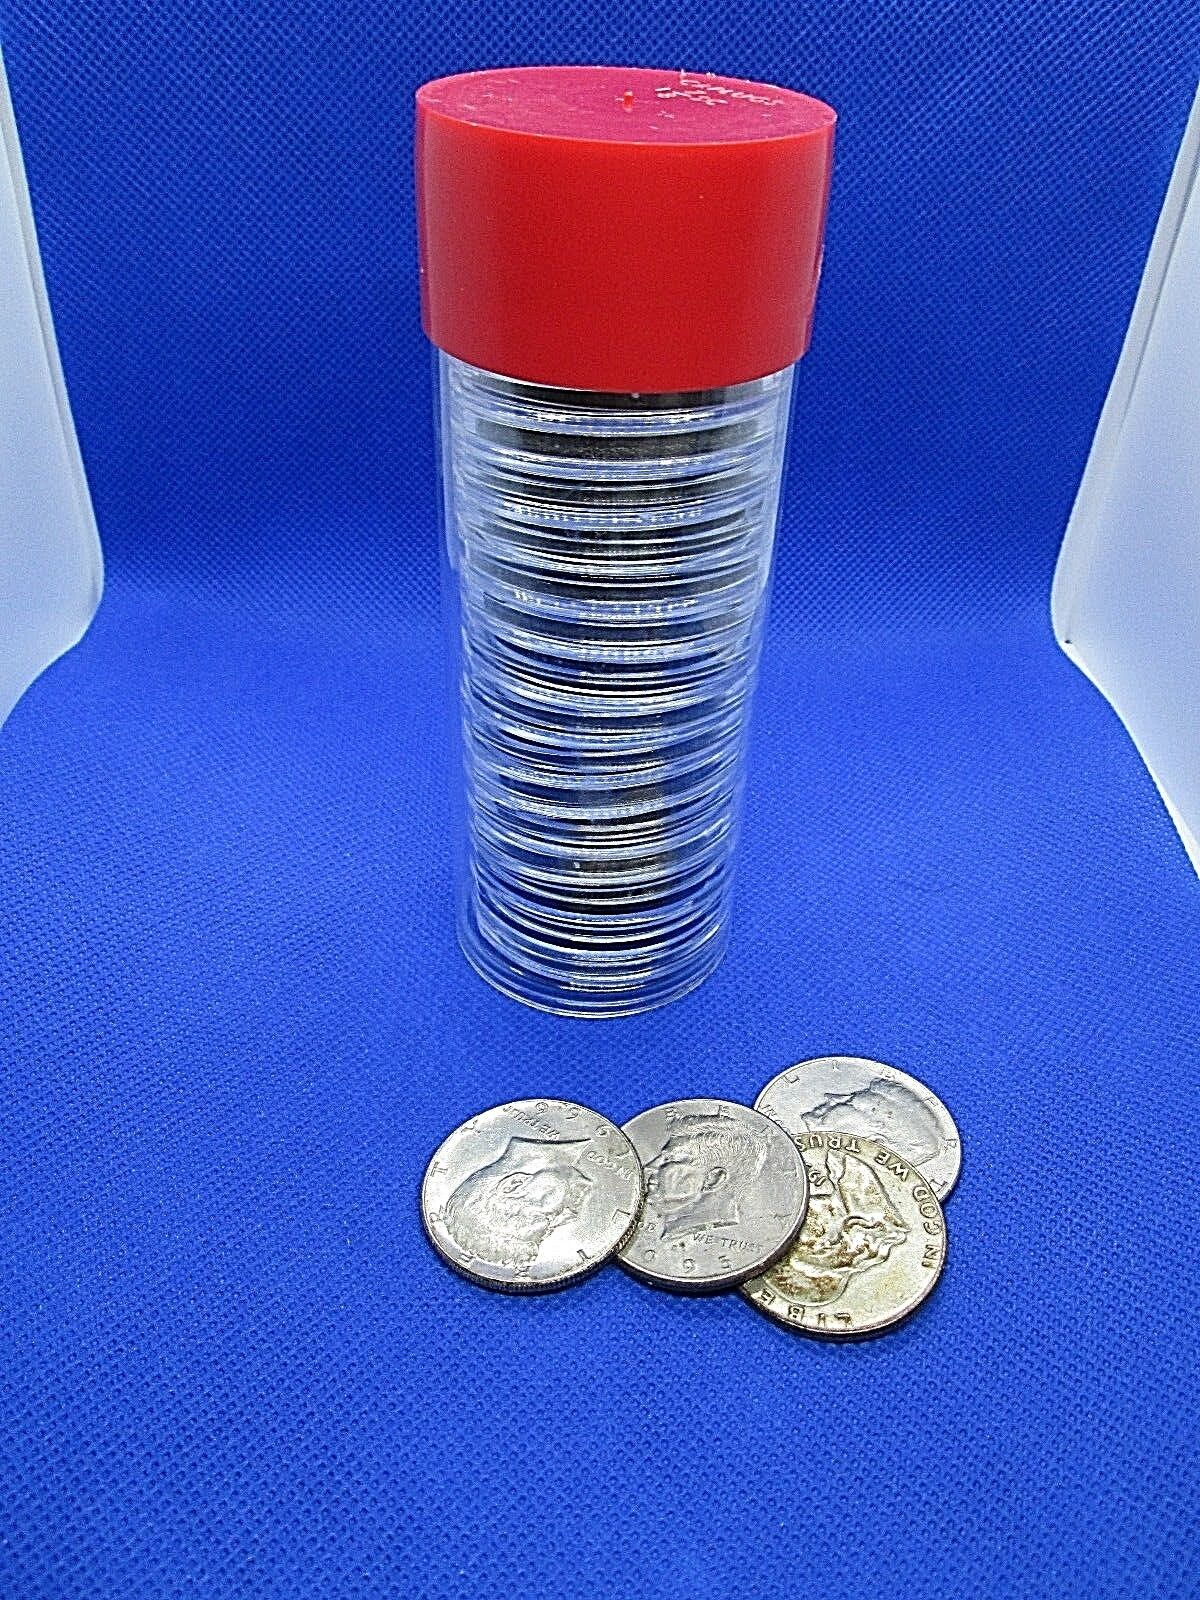 1 Airtite Coin Holder Storage Container /& 20 Black Ring 36mm Air-Tite Coin